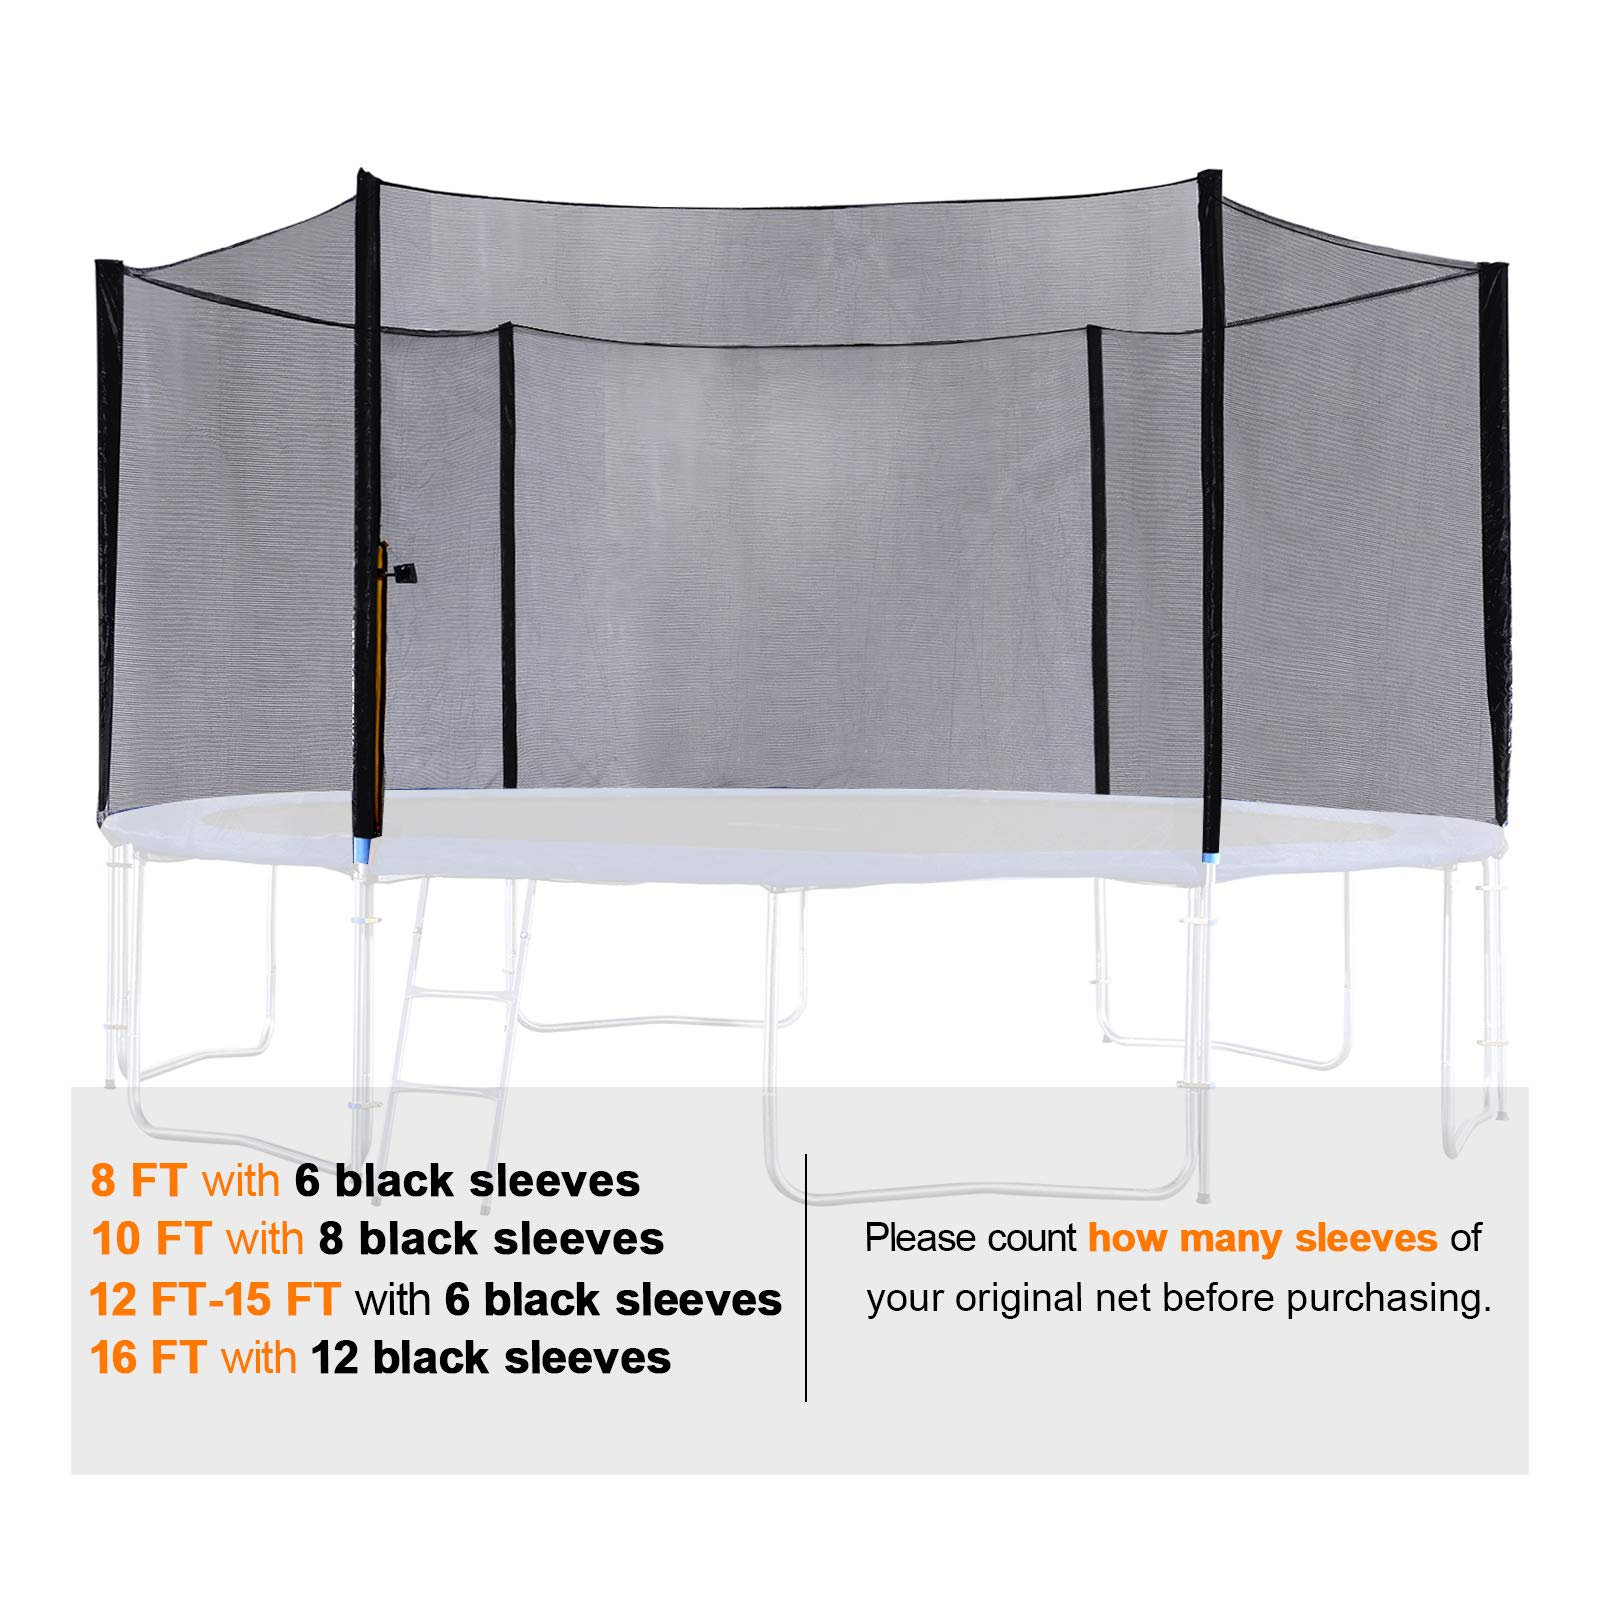 ExacMe Replacement Netting Outer Safety Net Without Poles for T-Series 10ft-16ft Trampoline-Net Only 6180 EN10T-EN16T (Fit Exacme T-Series 16ft) by Exacme (Image #5)